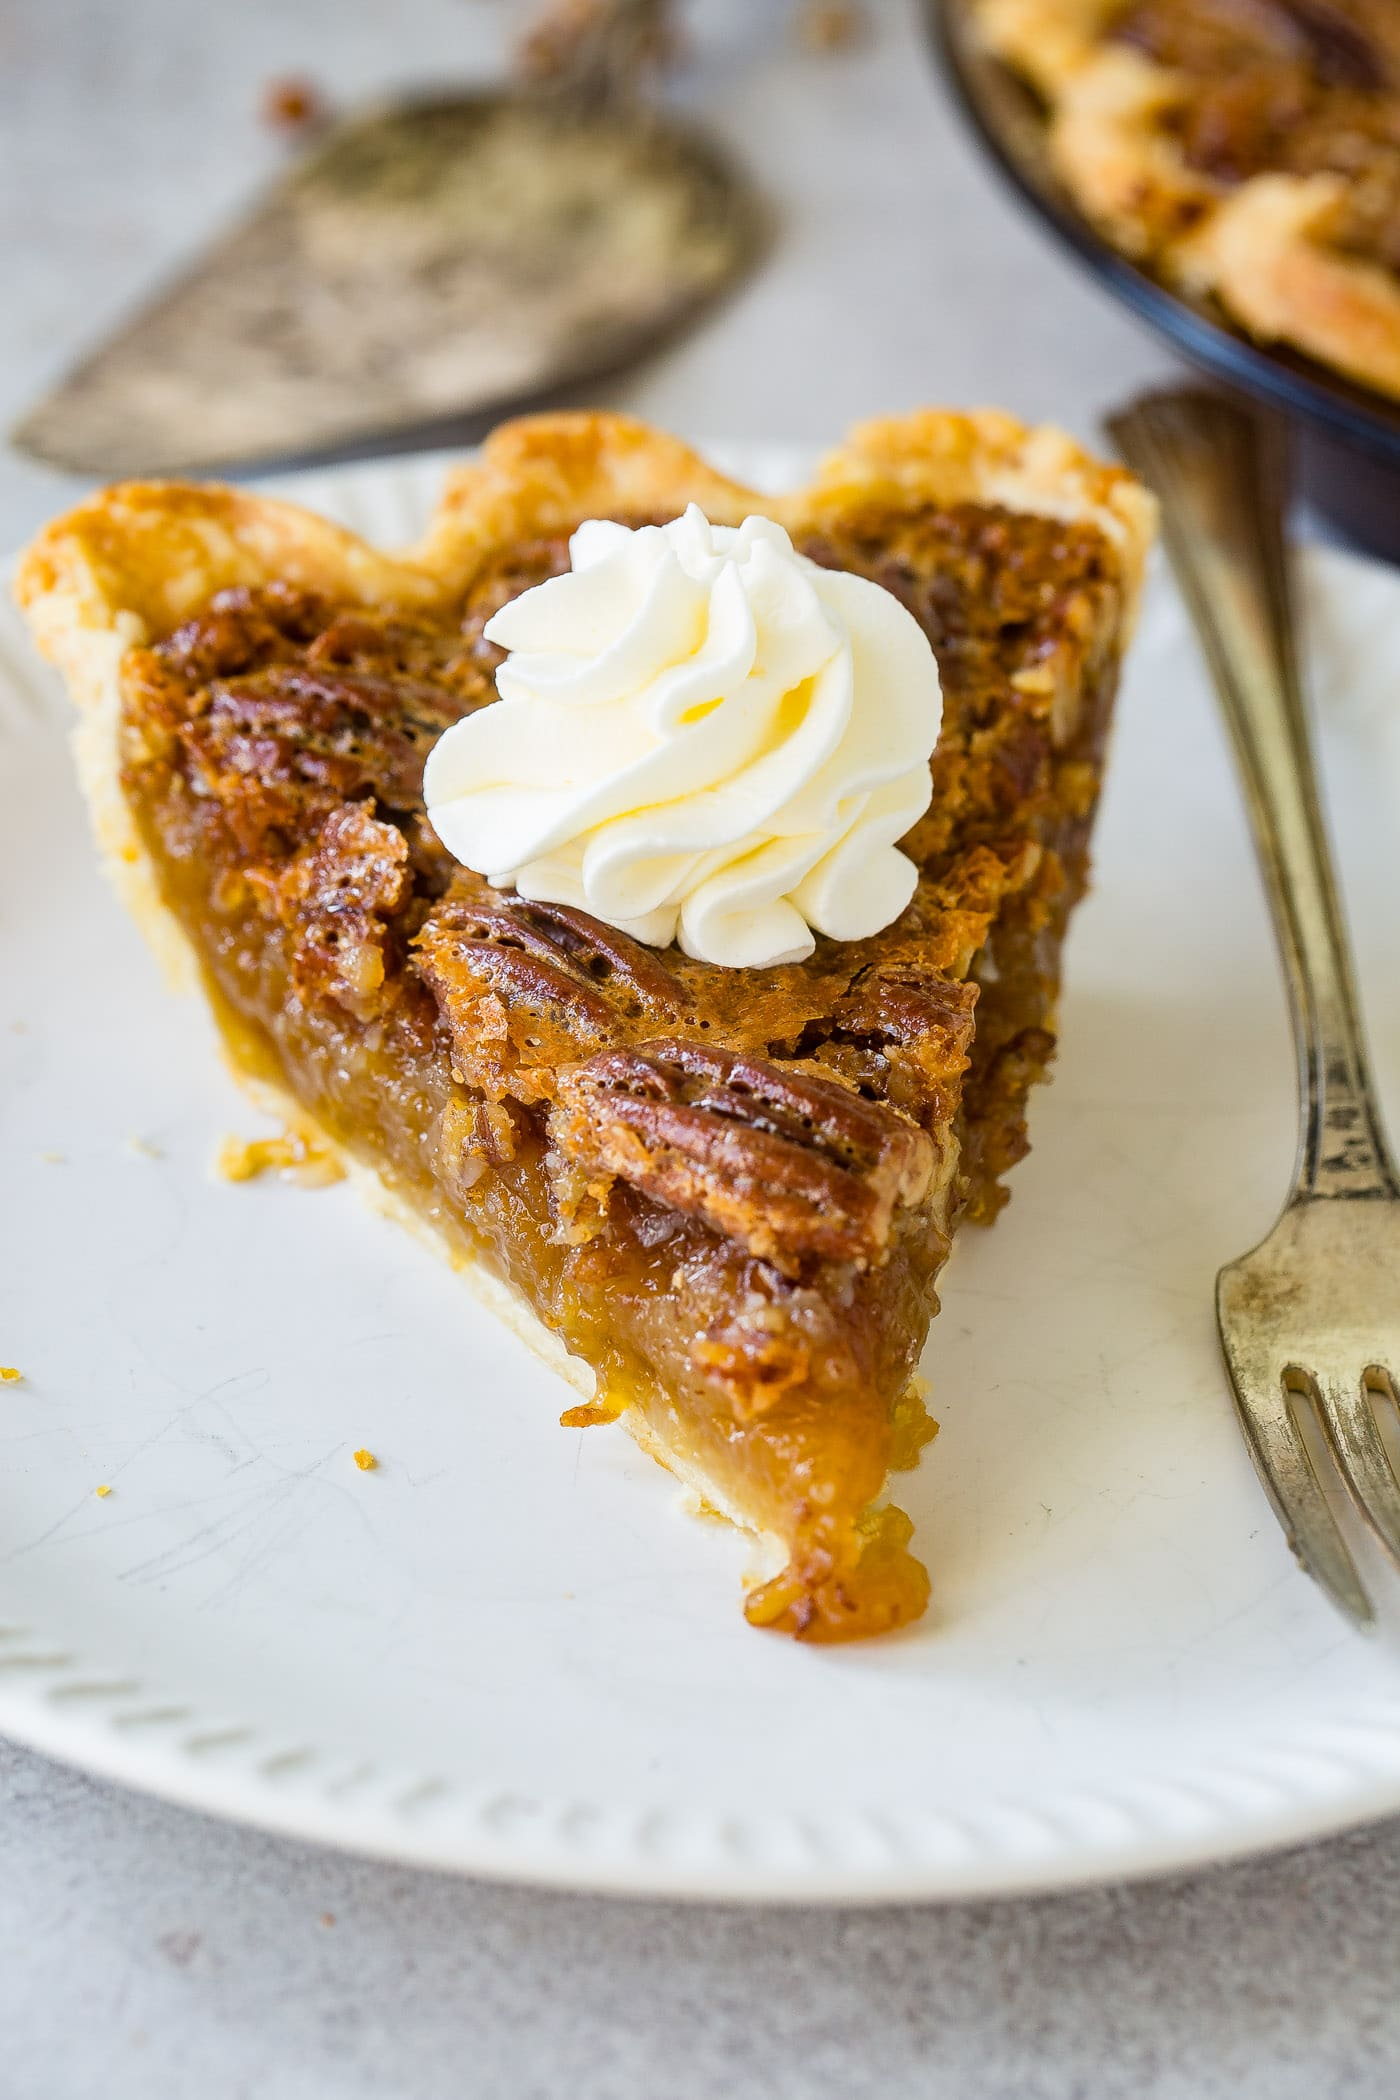 A photo of a slice of pecan pie on a white plate with a fork sitting next to it.